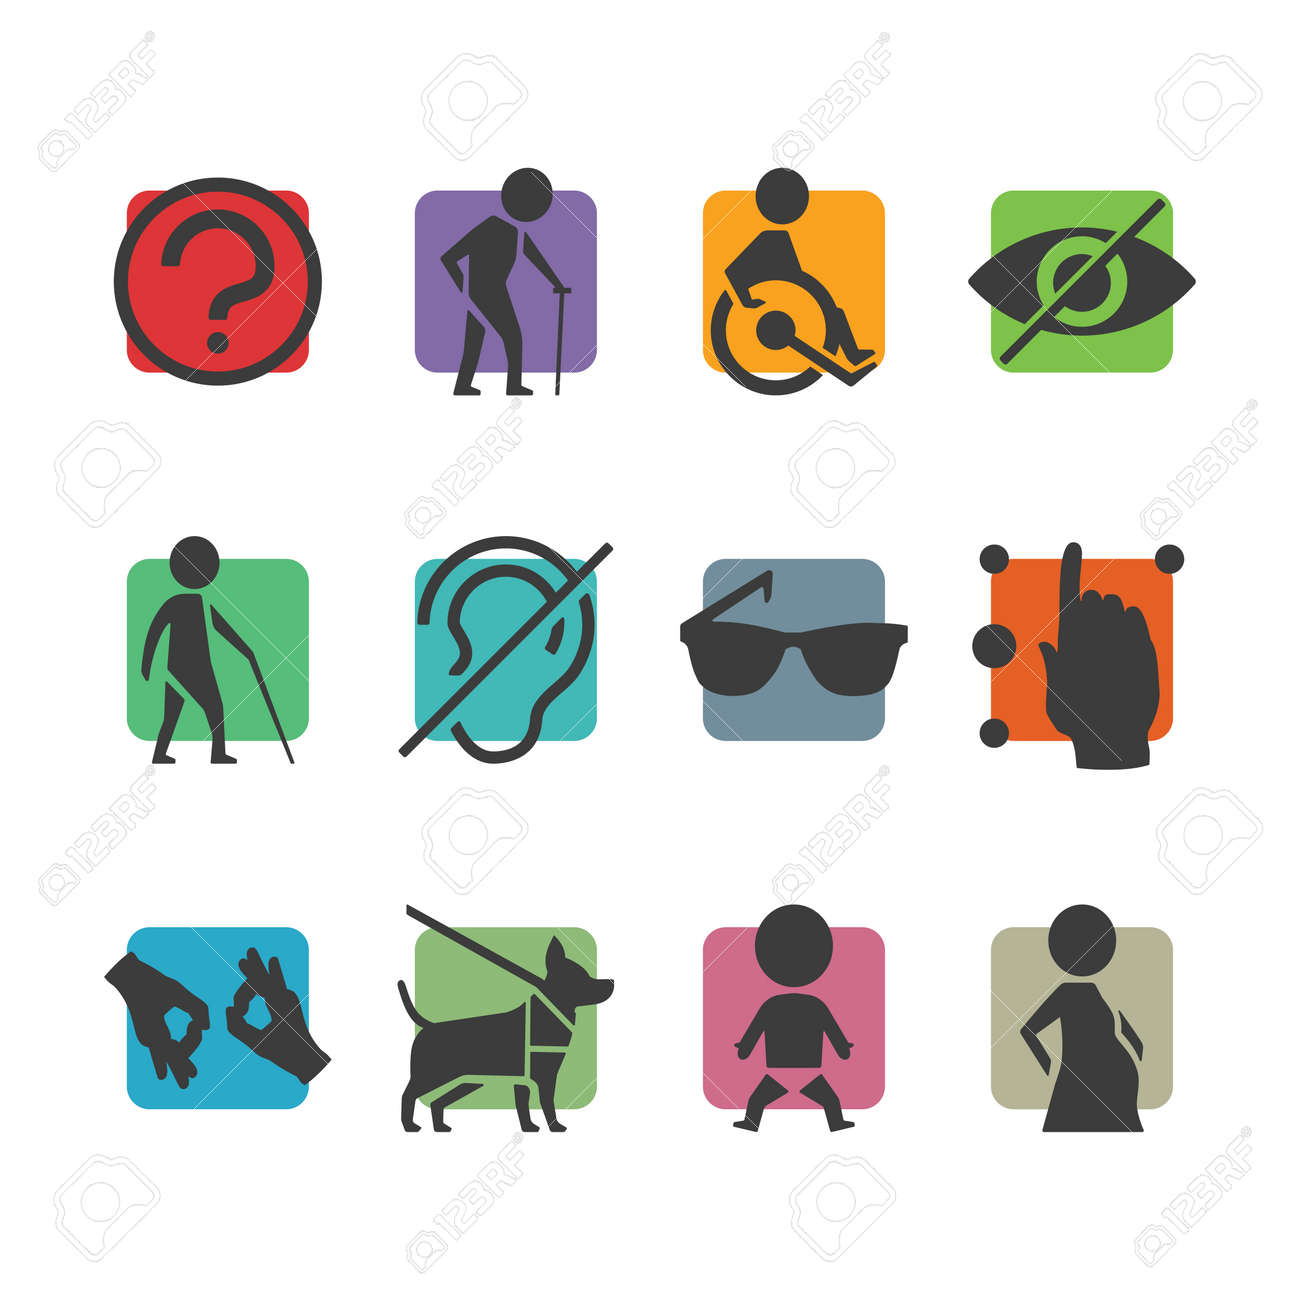 19737 disability stock illustrations cliparts and royalty free vector colorful icon set of access signs for physically disabled people like blind deaf mute and biocorpaavc